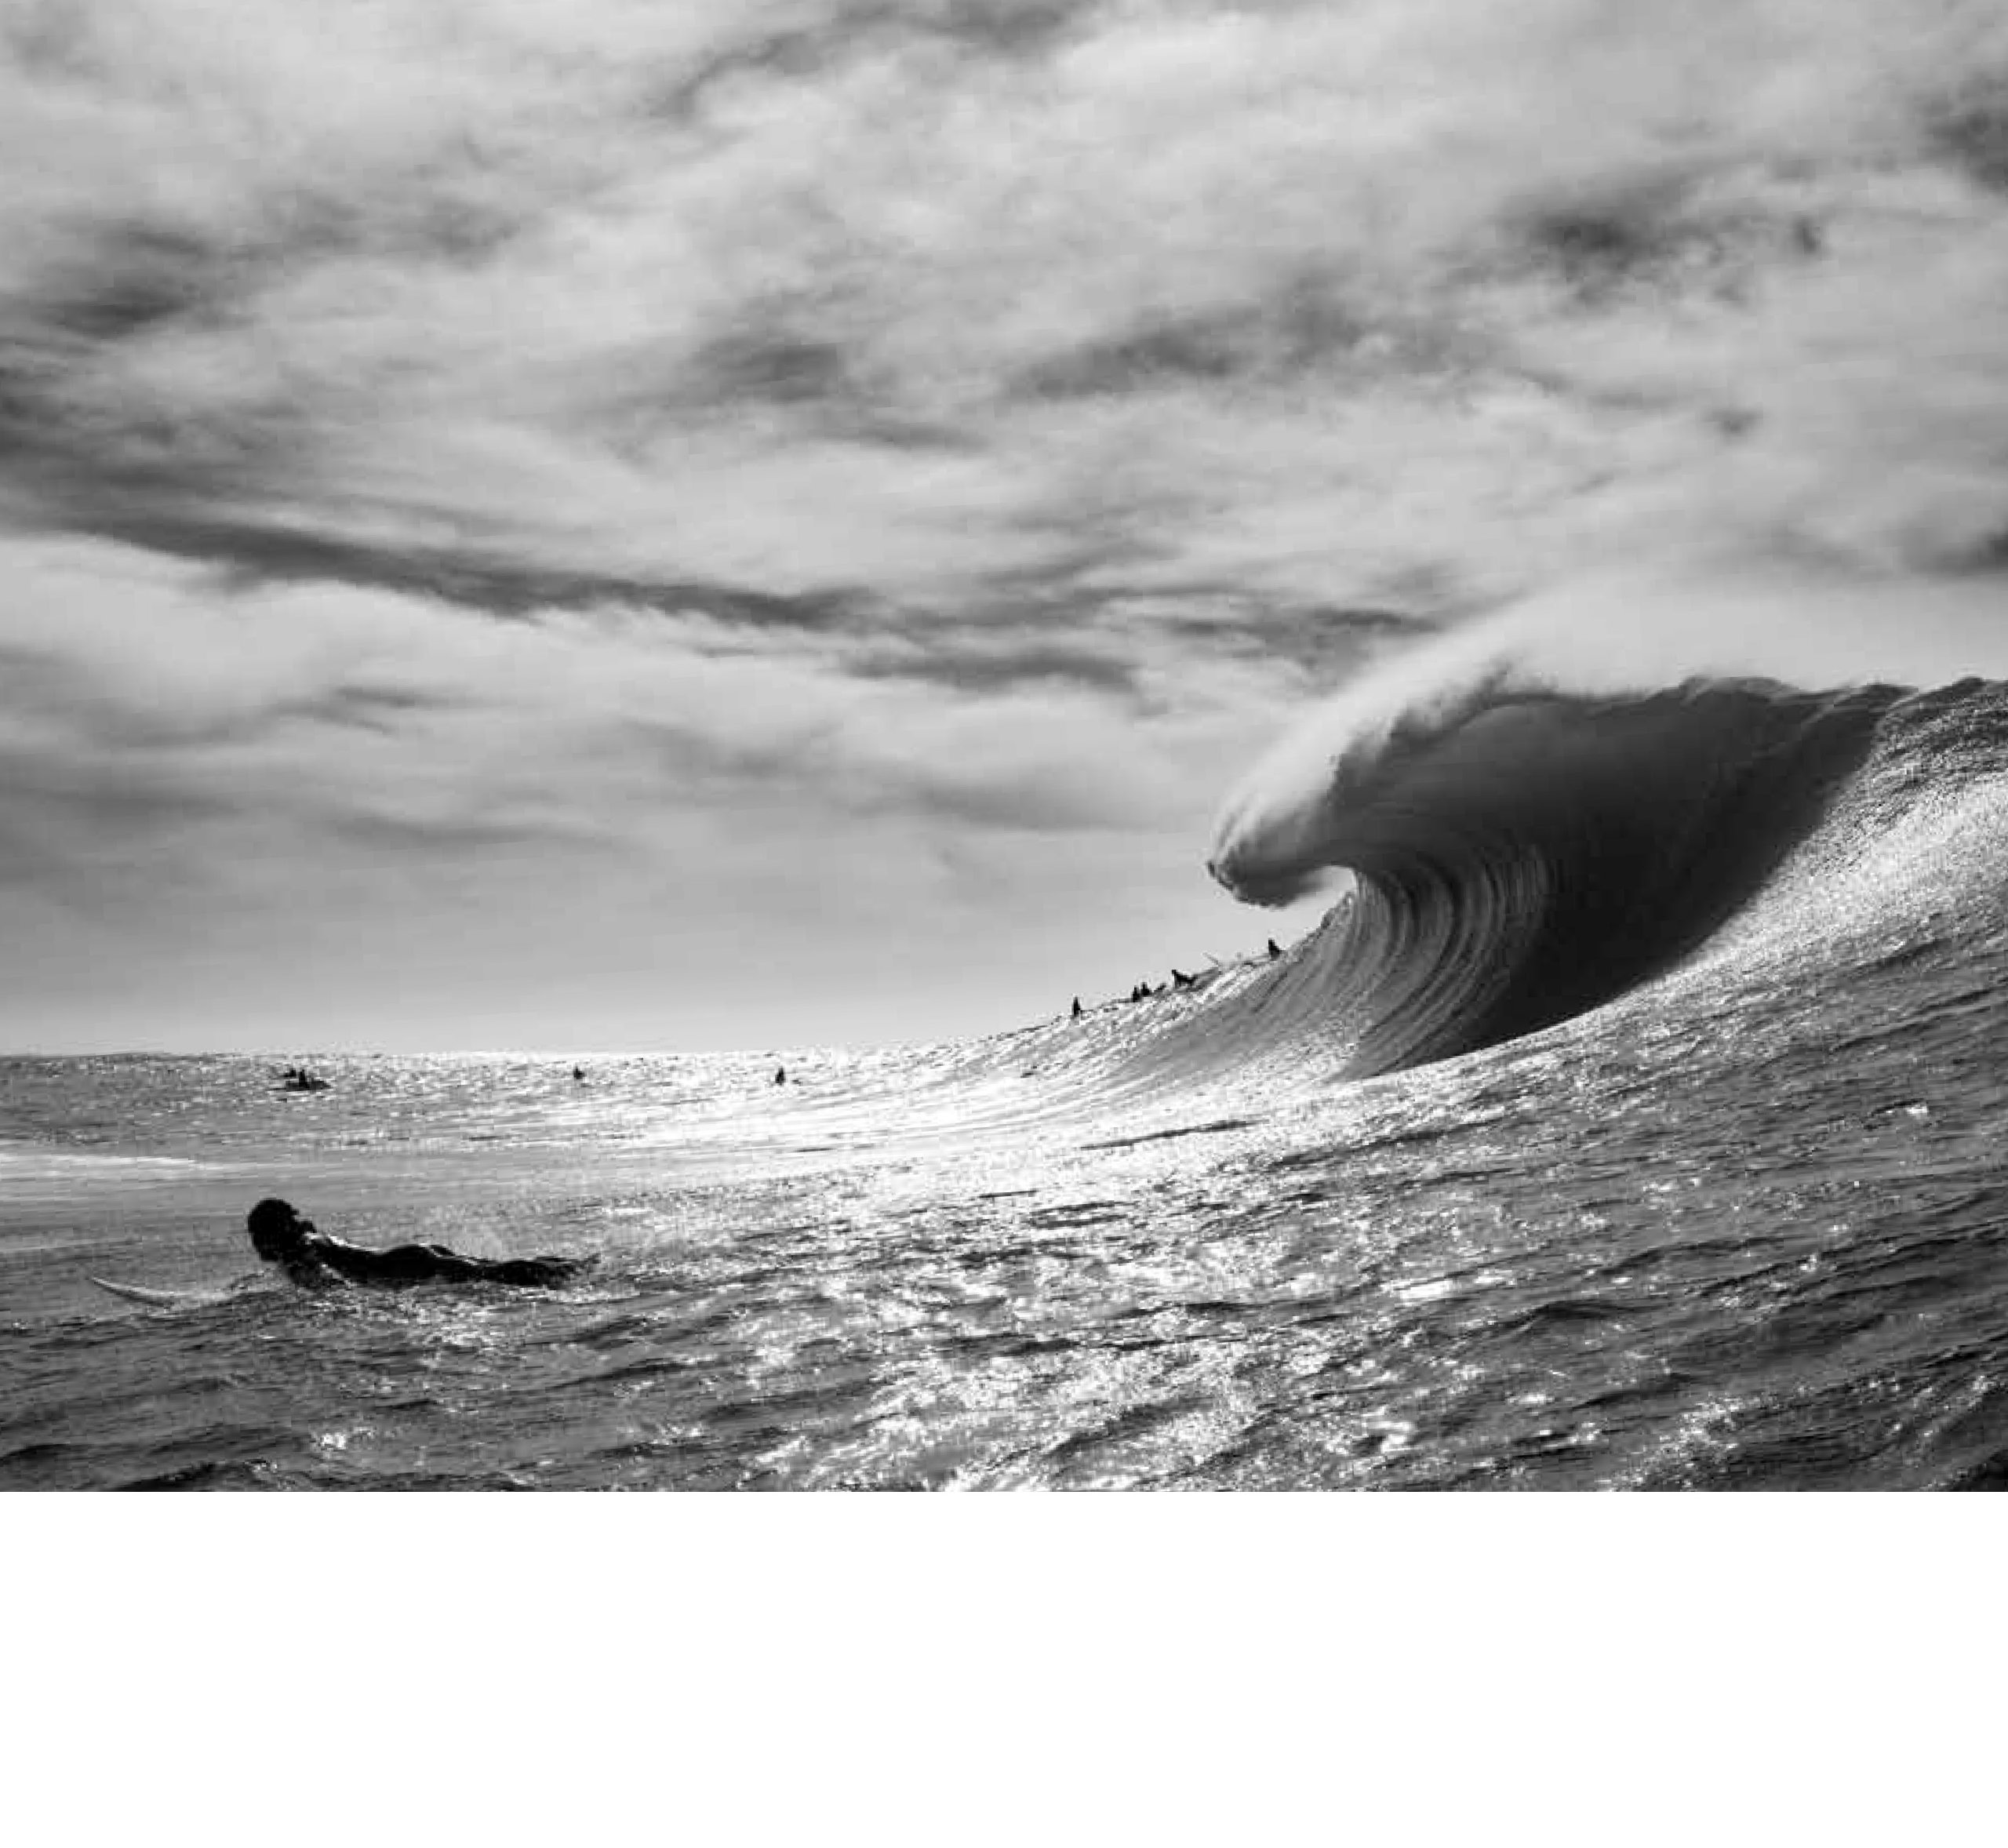 Swell A Year Of Waves Evan Slater Amazoncom Books - Guys sets himself on fire before surfing a huge wave